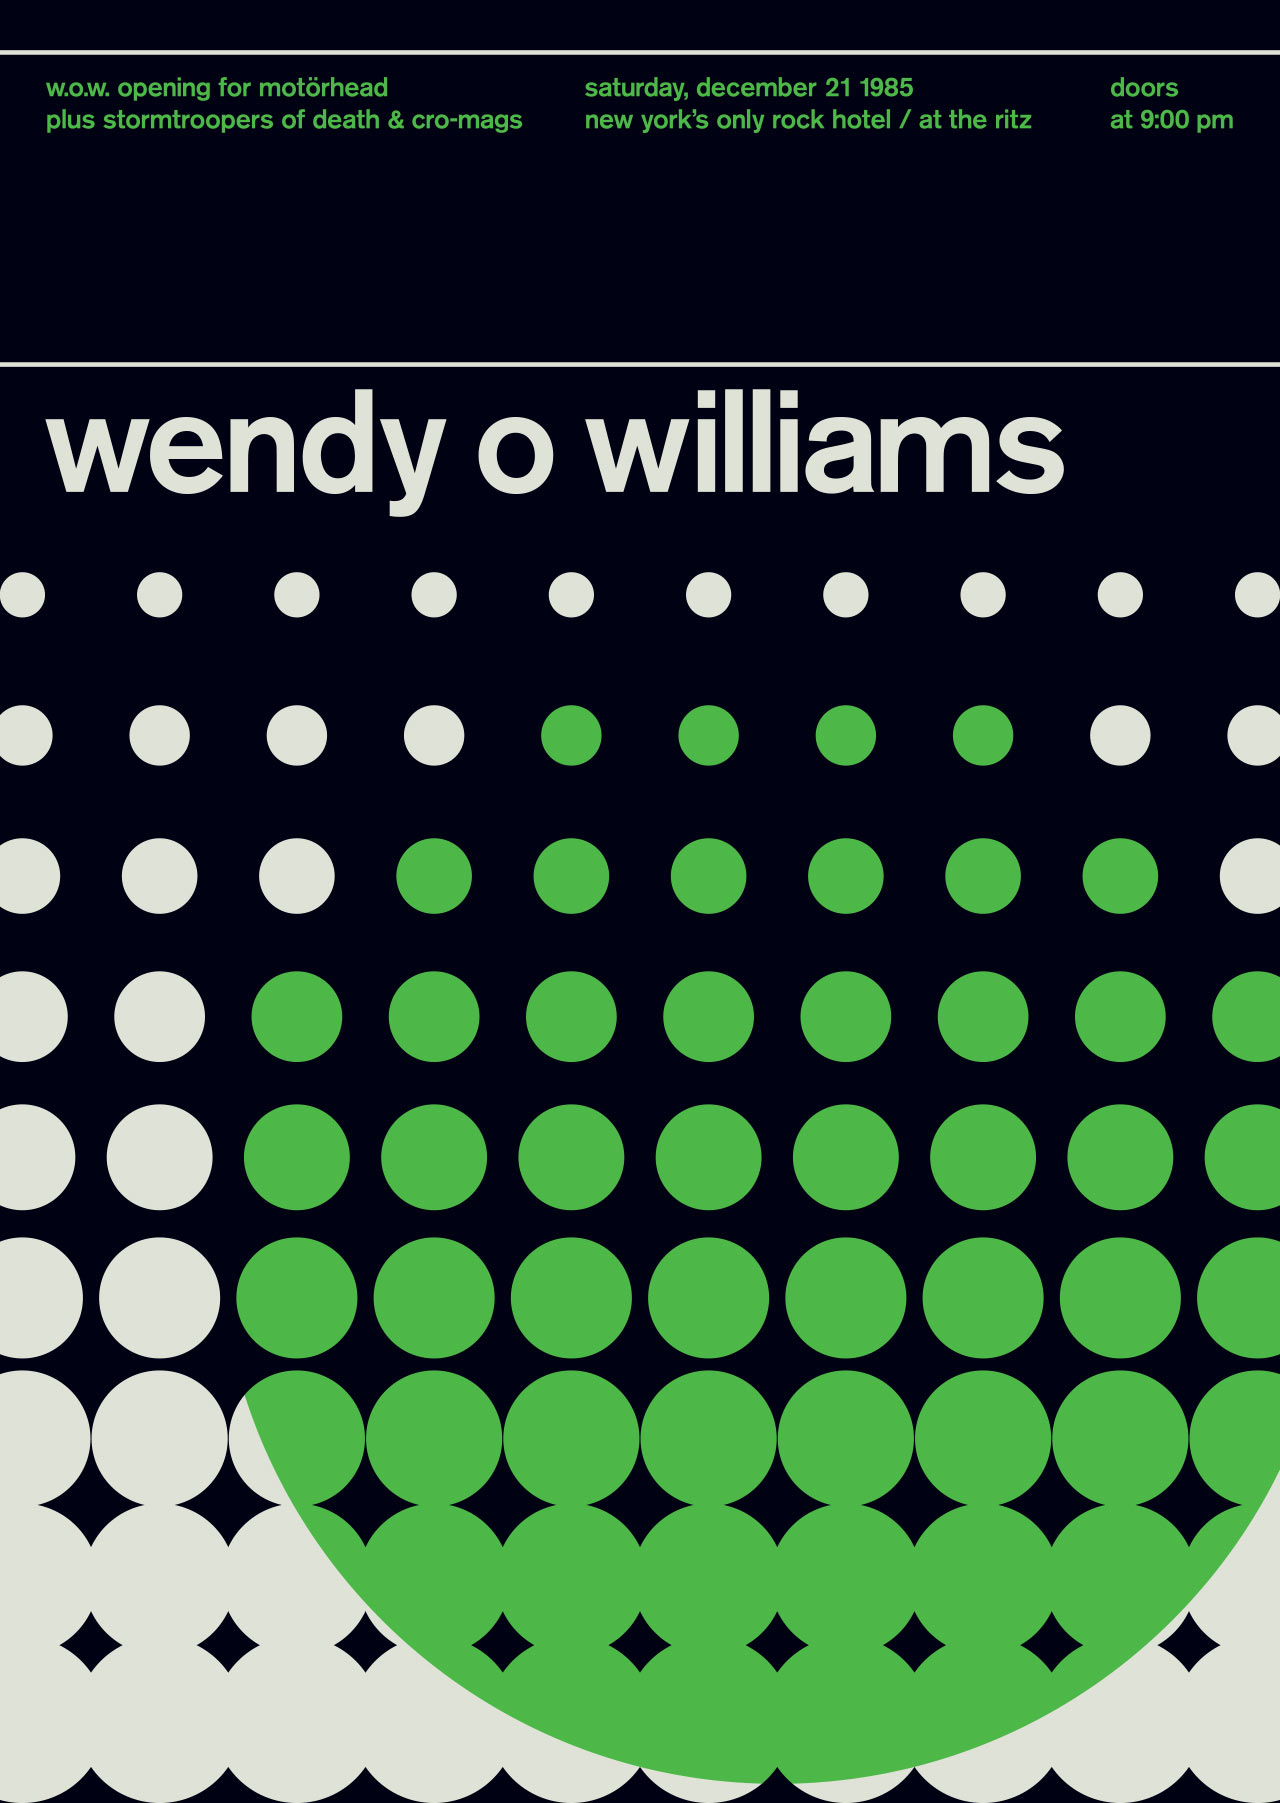 Swissted-Legends_Posters-17-wendy_o_williams_legends_series